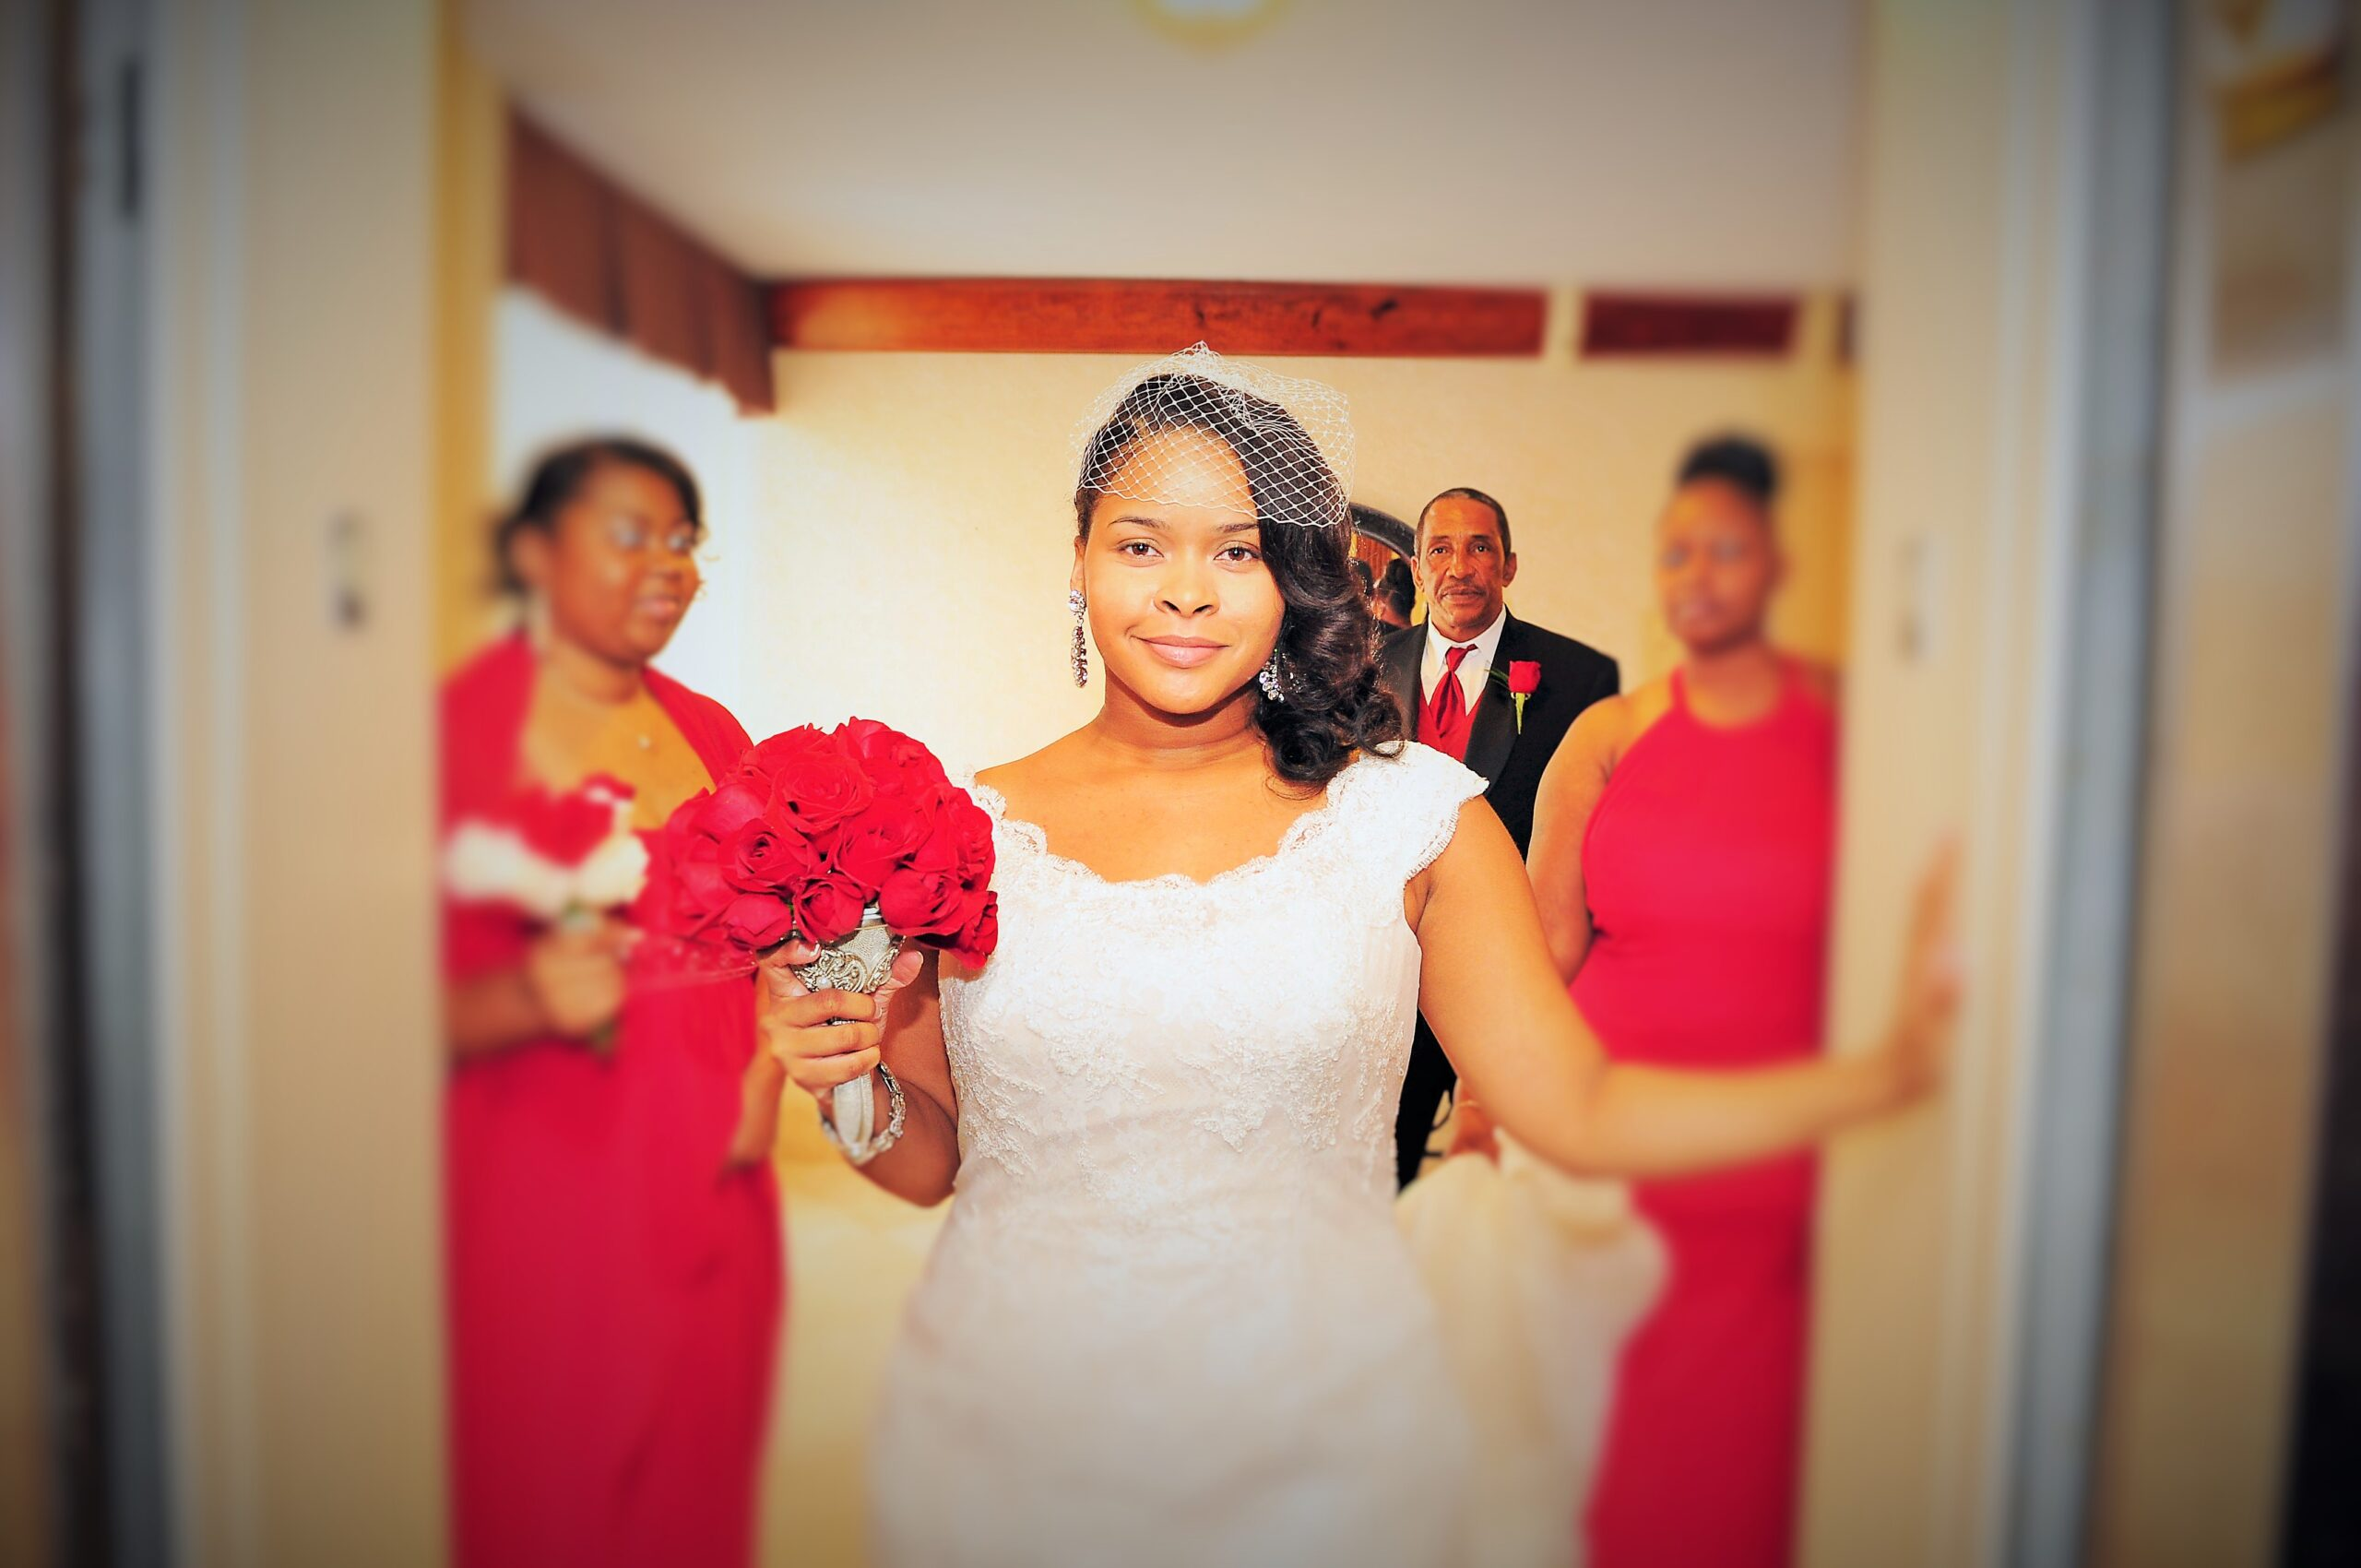 bride posing for photos with her father and rwedding party in the background